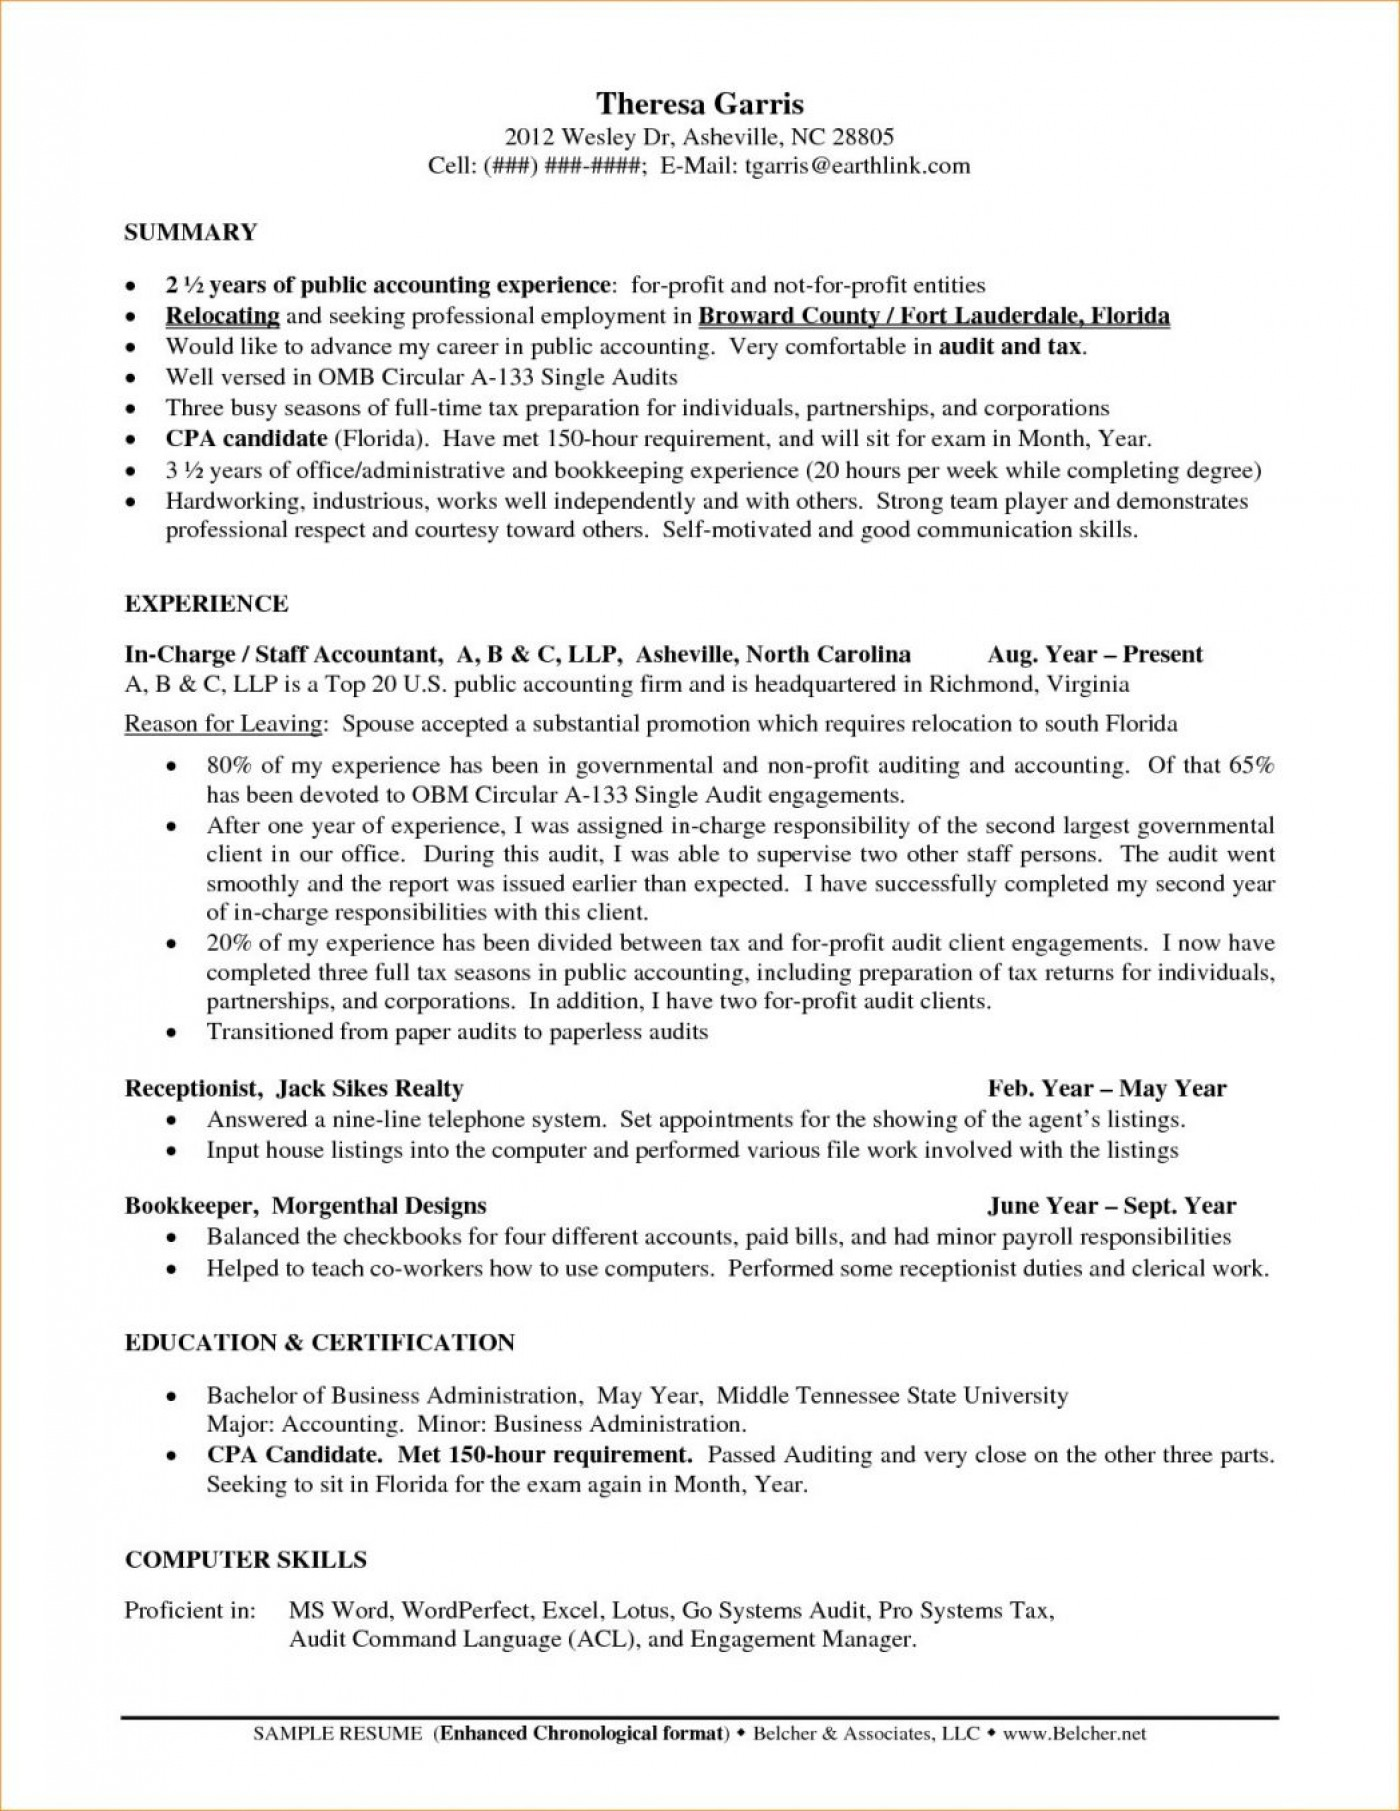 024 Essay Example Best Solutions Of Professional Mba Reflective Help Mri Tech Writing On Teaching Sample Cover Grea Leadership Introduction Using Gibbs Model In Third Person Work Experience Beautiful Examples Pdf About English 101 1400